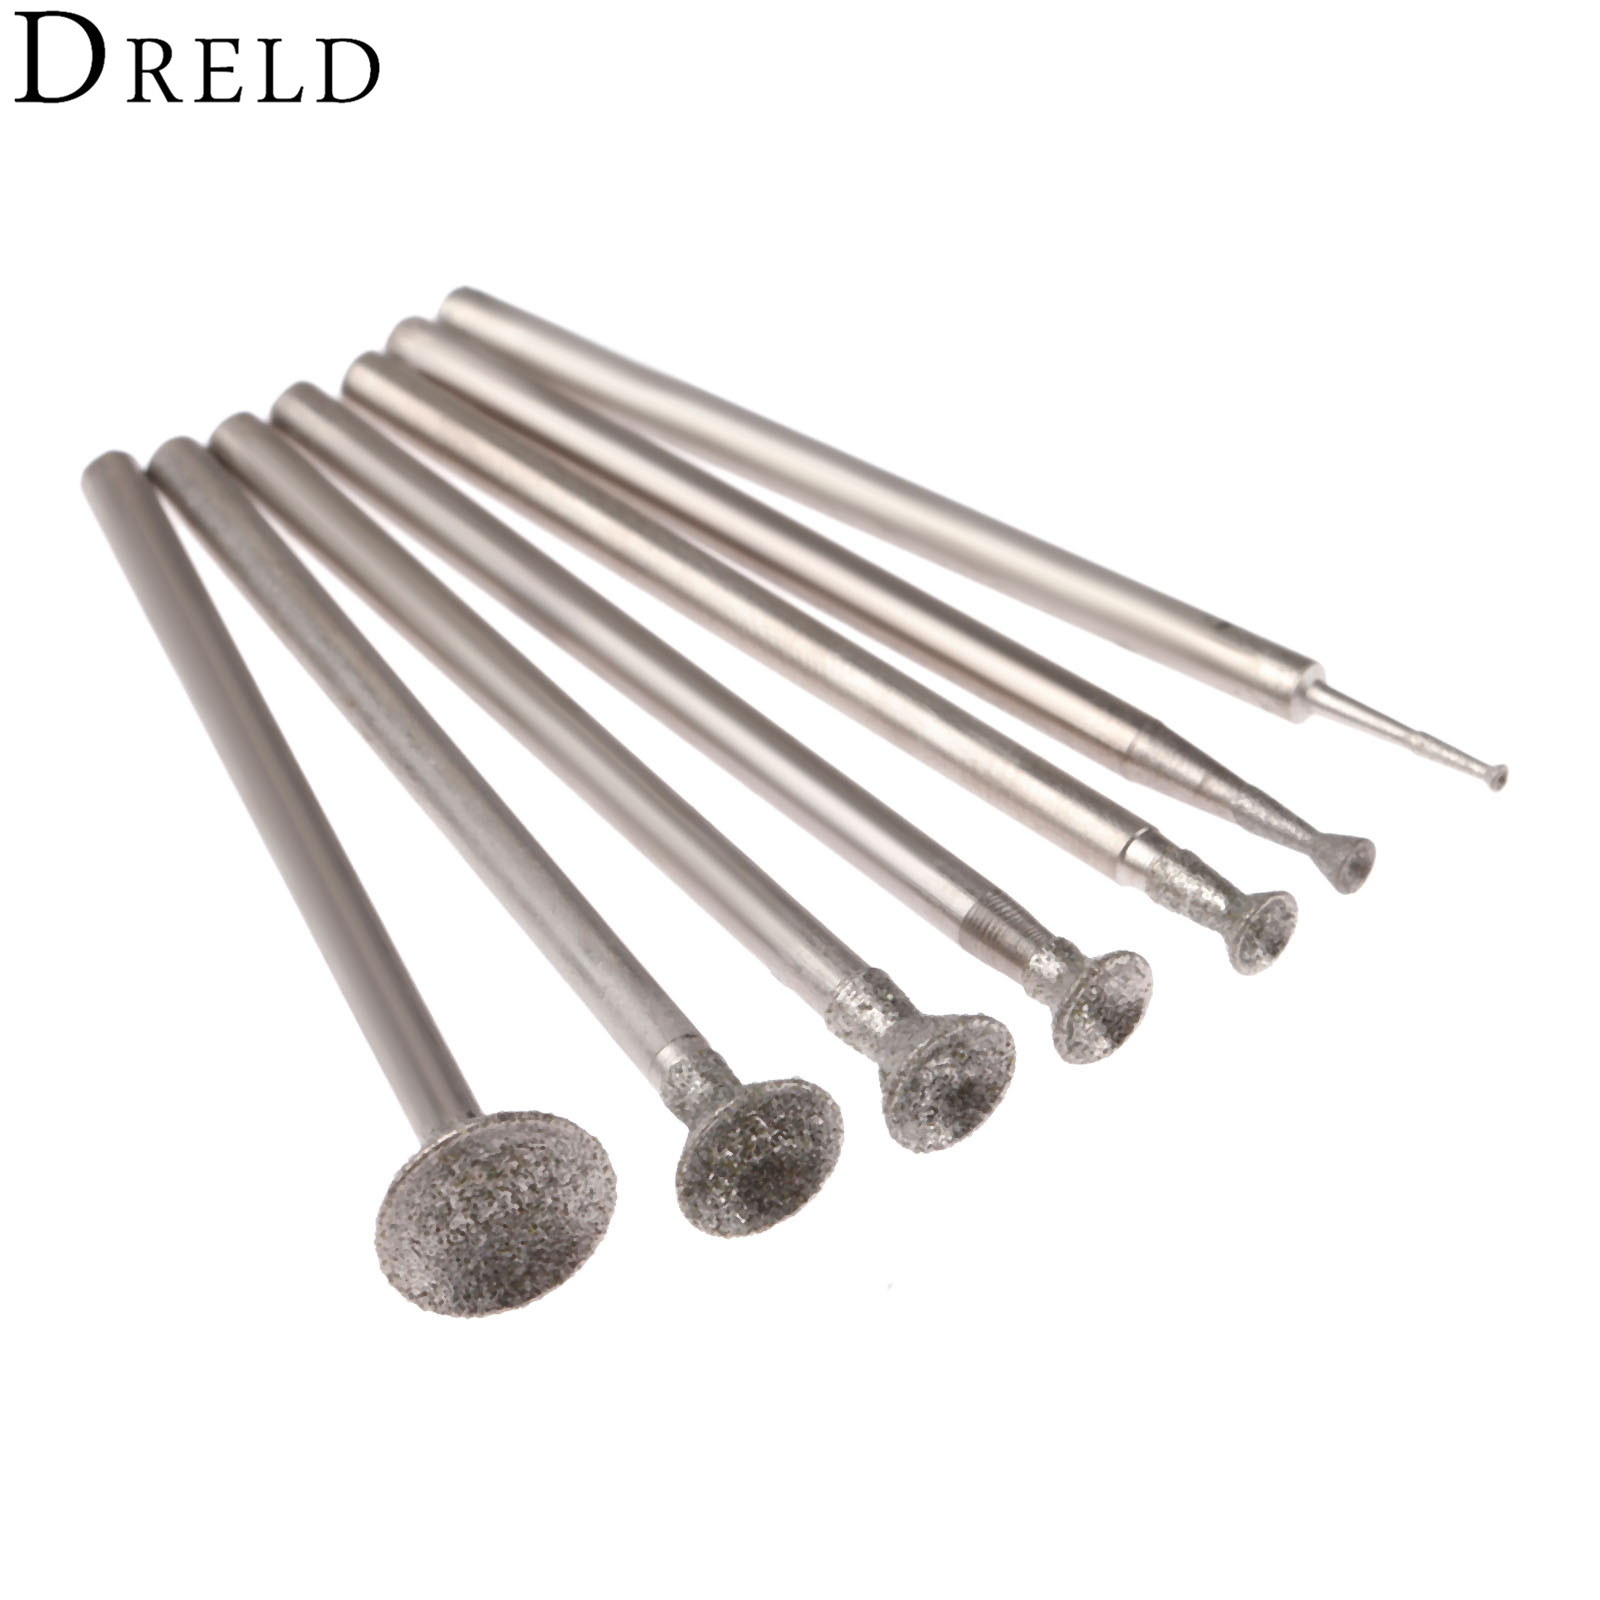 DRELD 7Pcs 1-8mm Diamond Grinding Head Mounted Points 2.35mm Shank Spherical Concave Jade Carving Burrs For Dremel Rotary Tool